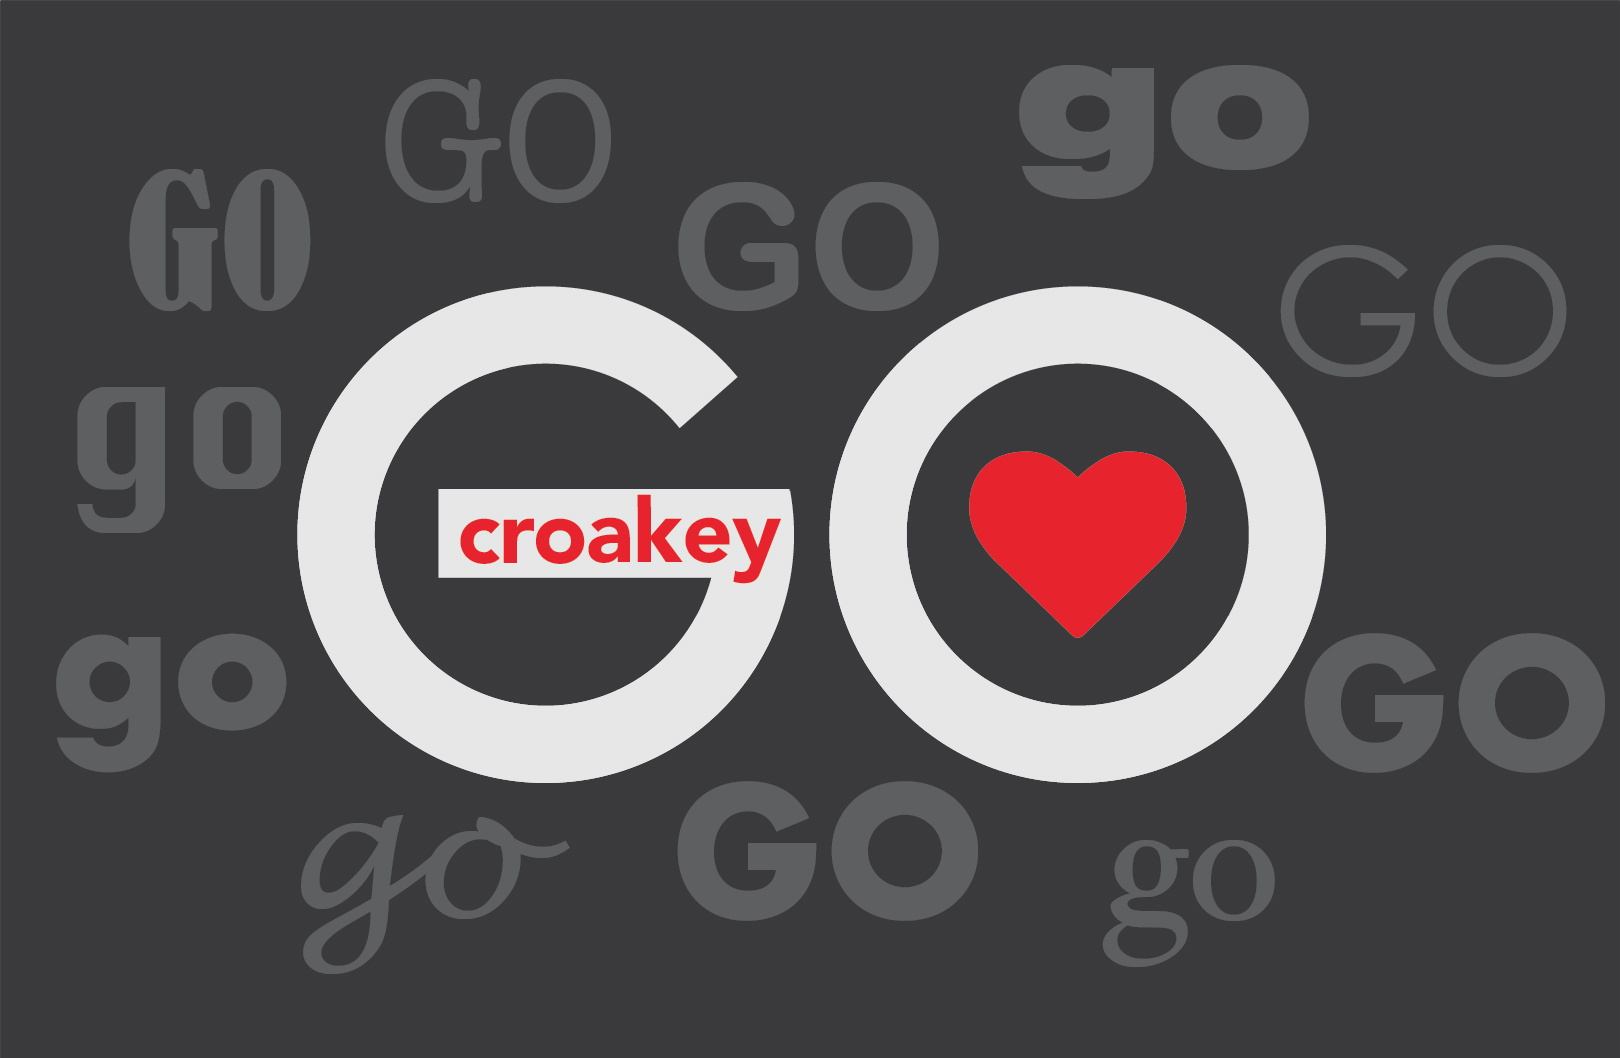 Get your Croakey Go t-shirt